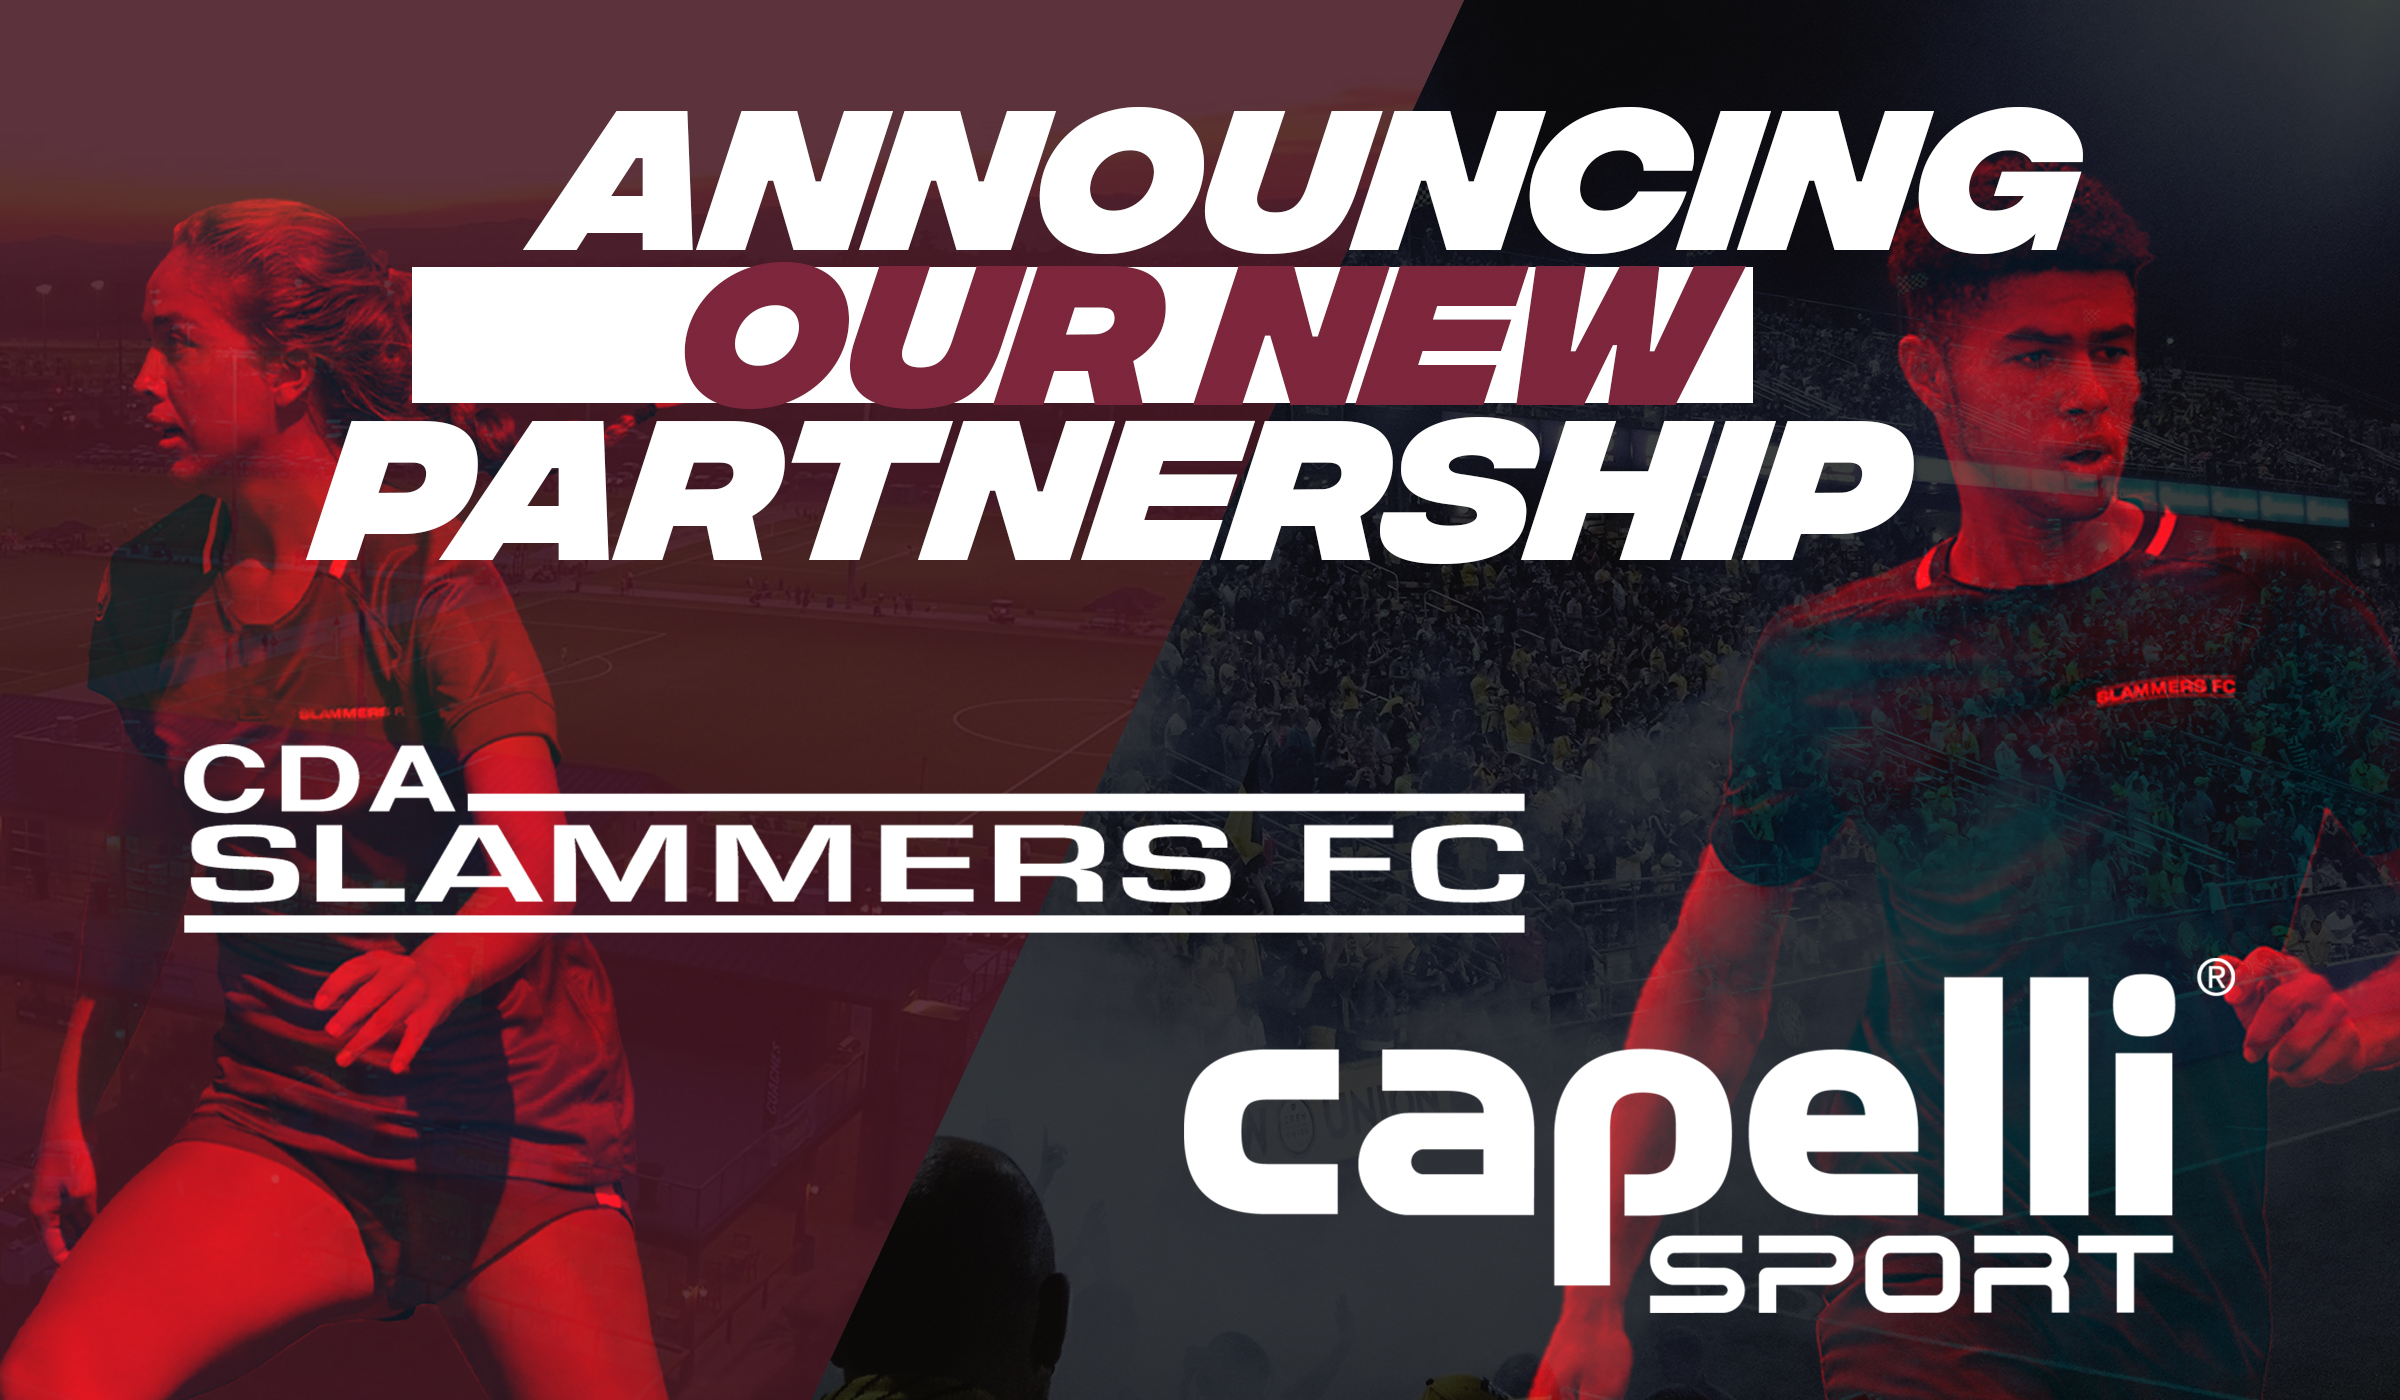 announcing our new partnership cda slammers fc and capelli sport